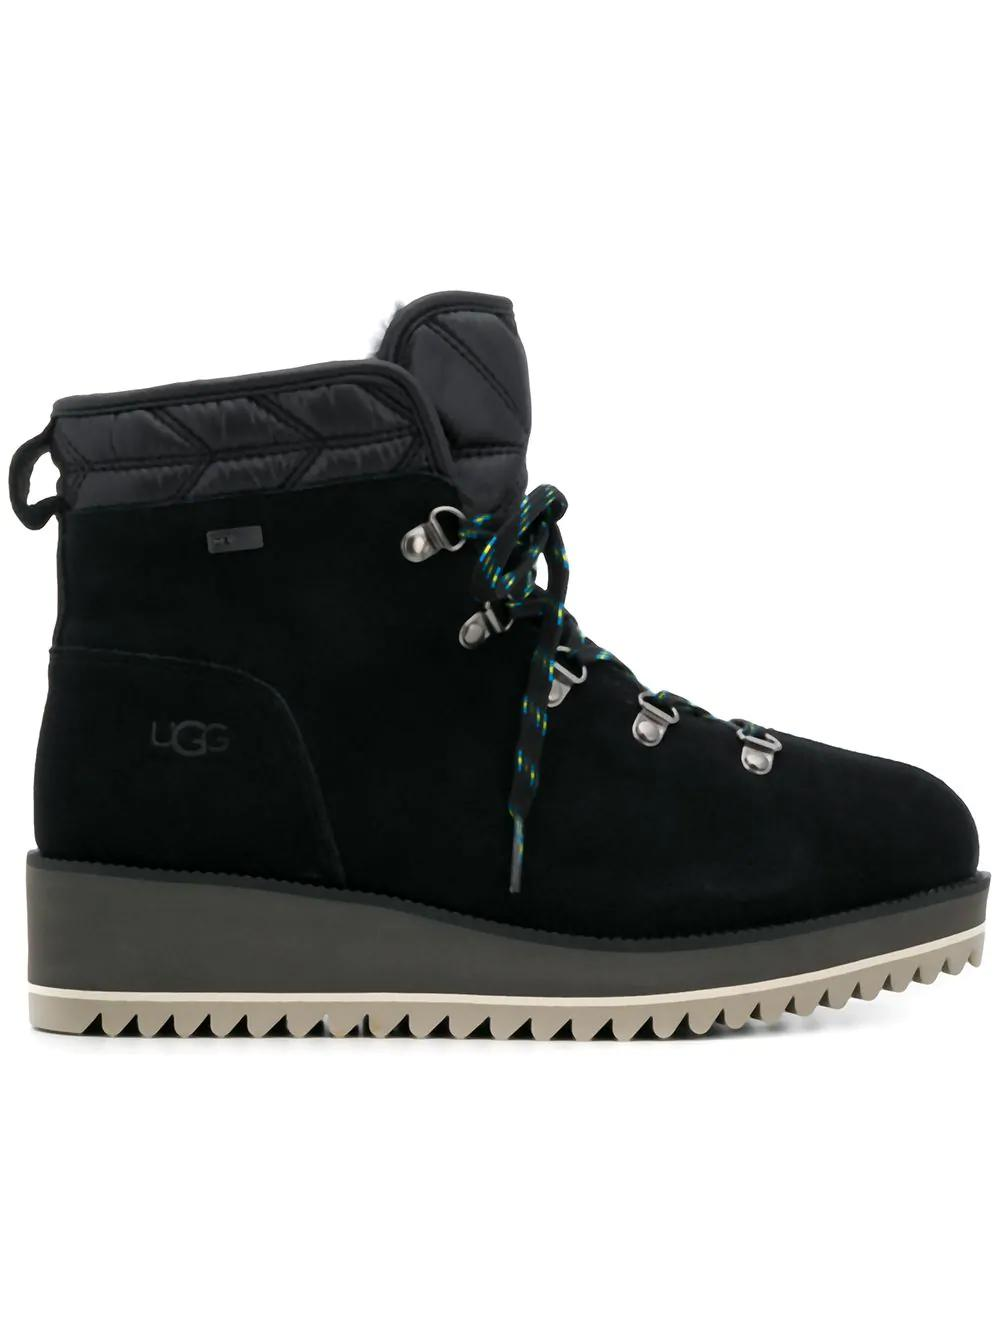 c094e17f279 Ugg Lace Up Ankle Boots - Best Picture Of Boot Imageco.Org